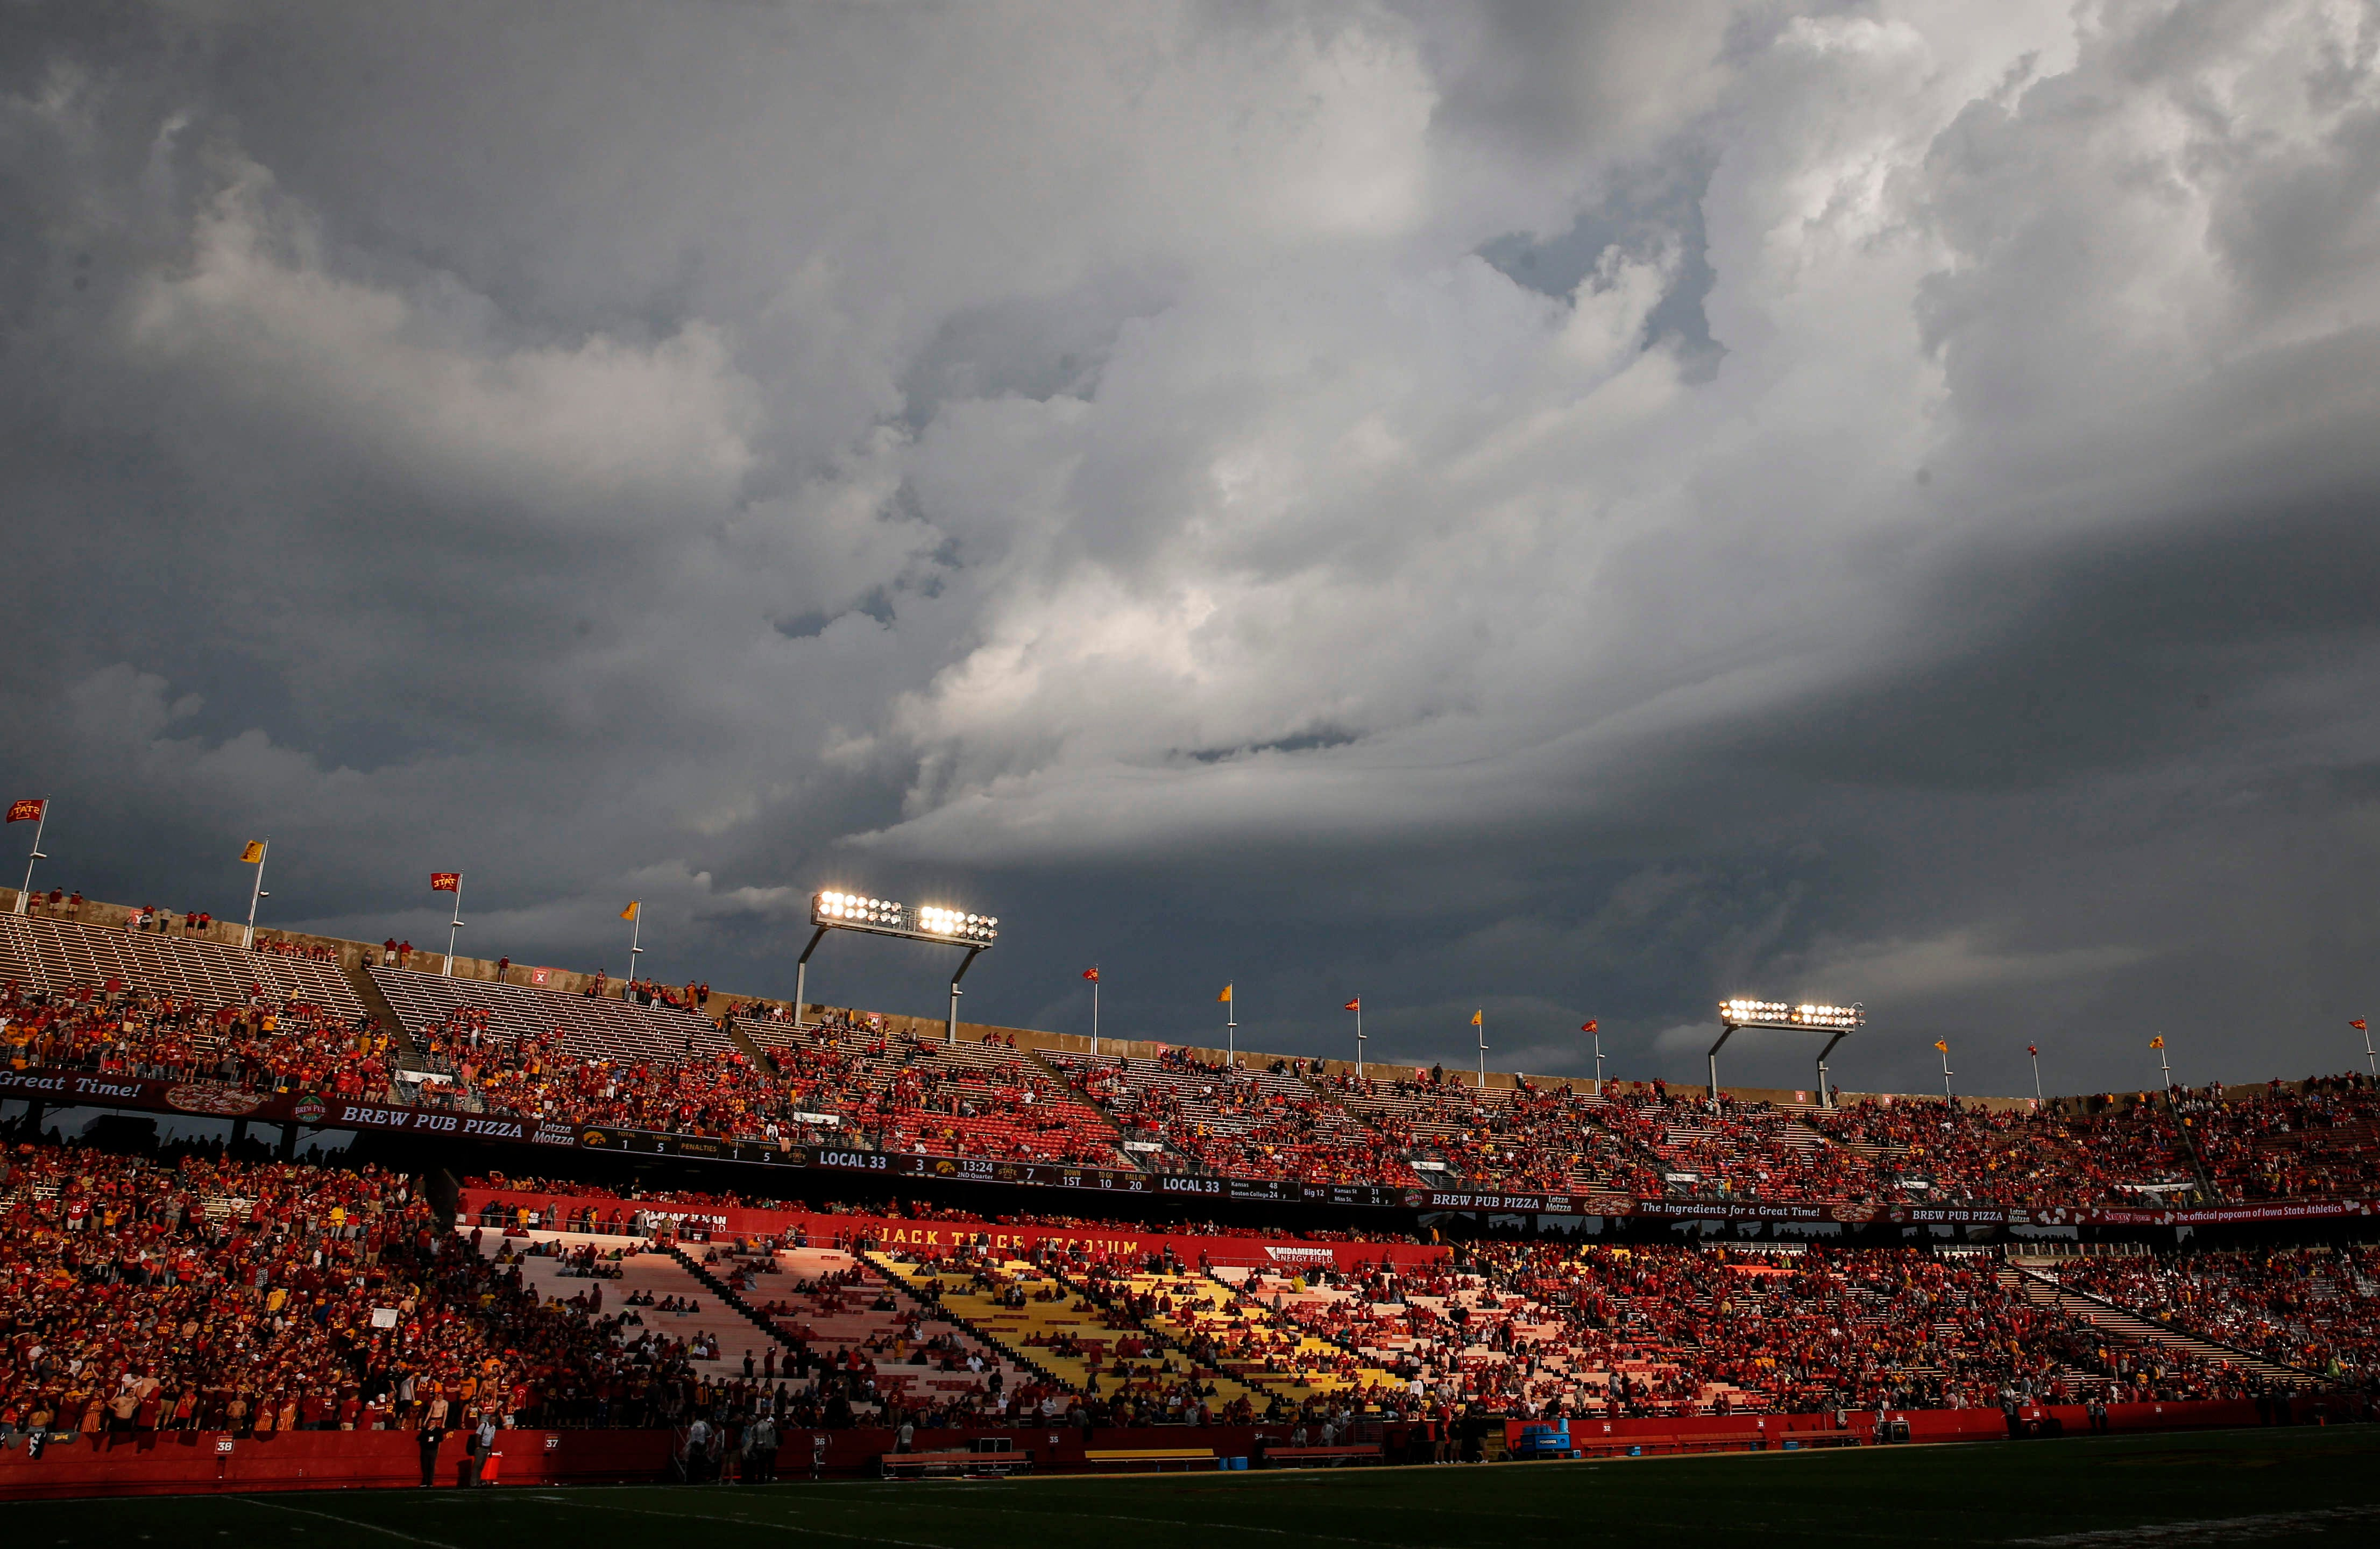 Photos: 2019 Cy-Hawk game interrupted by storms